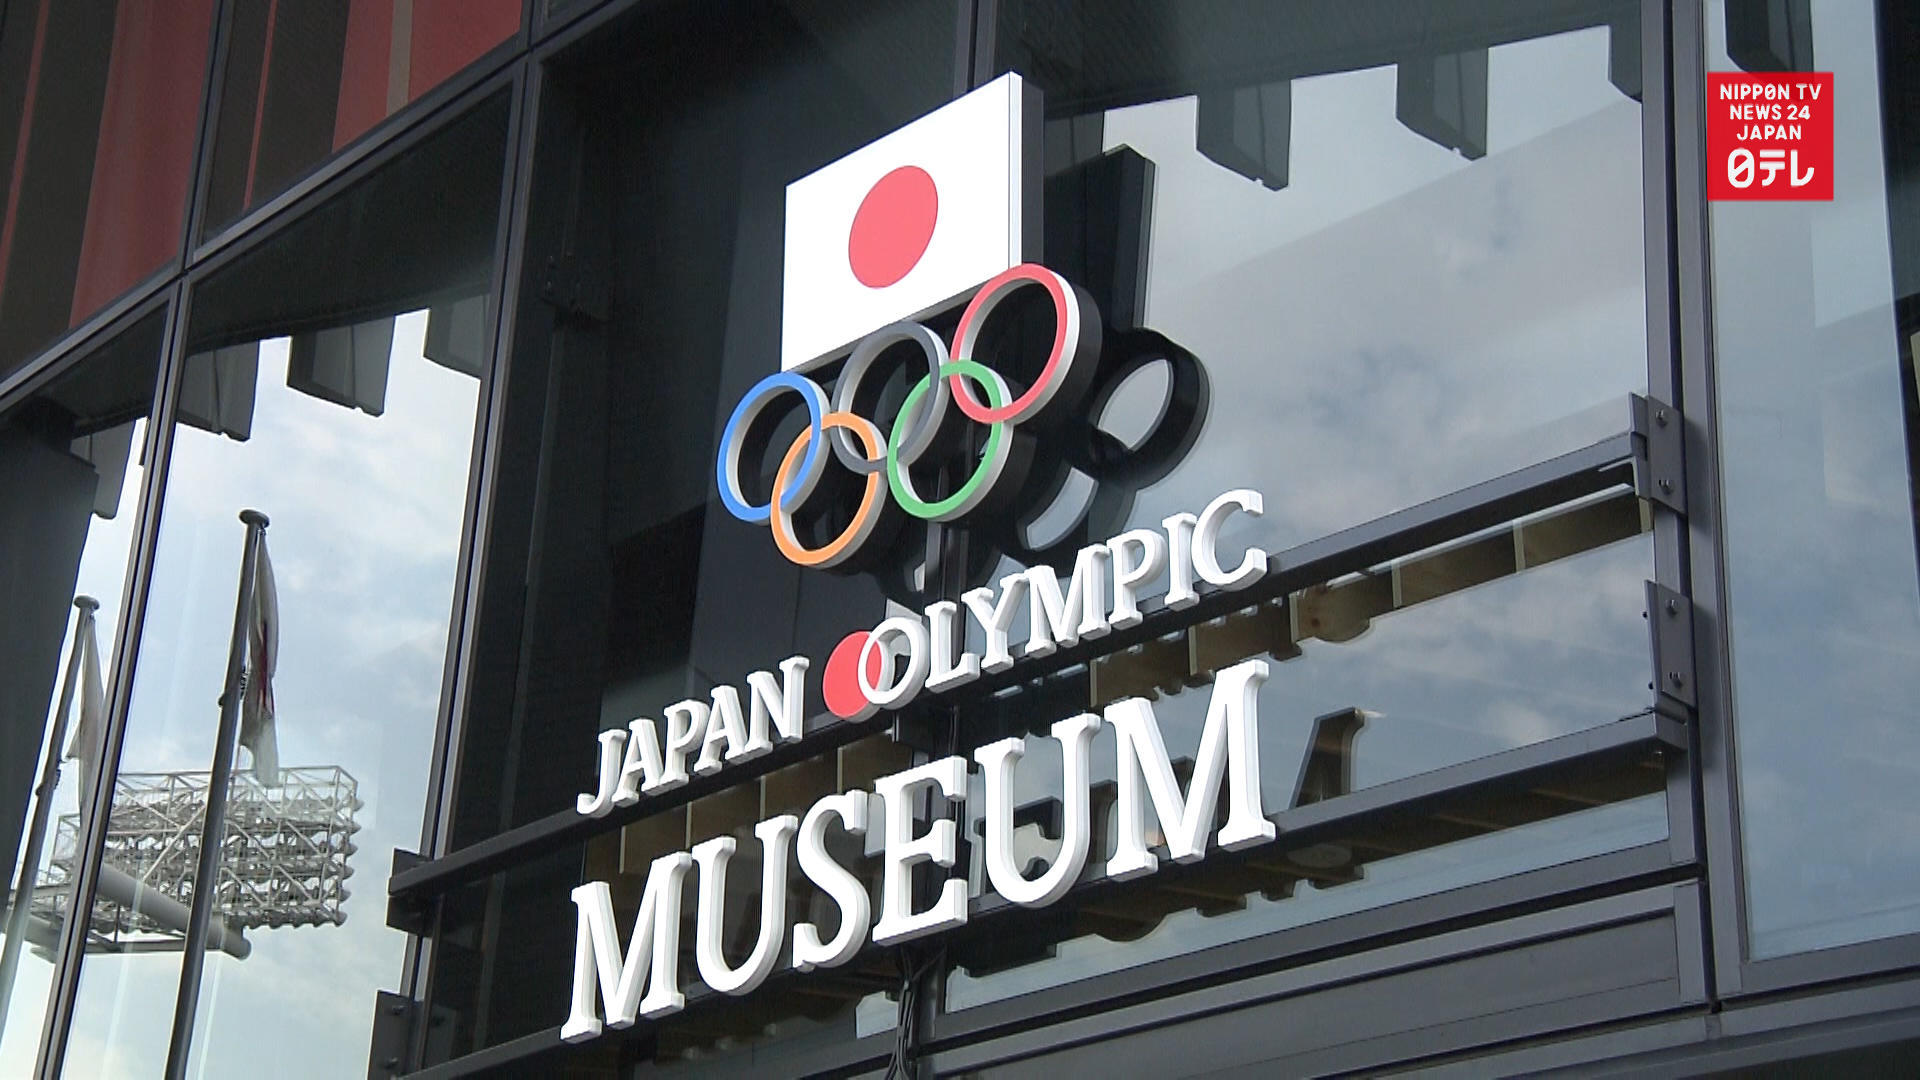 Opening ceremony held for Olympic museum